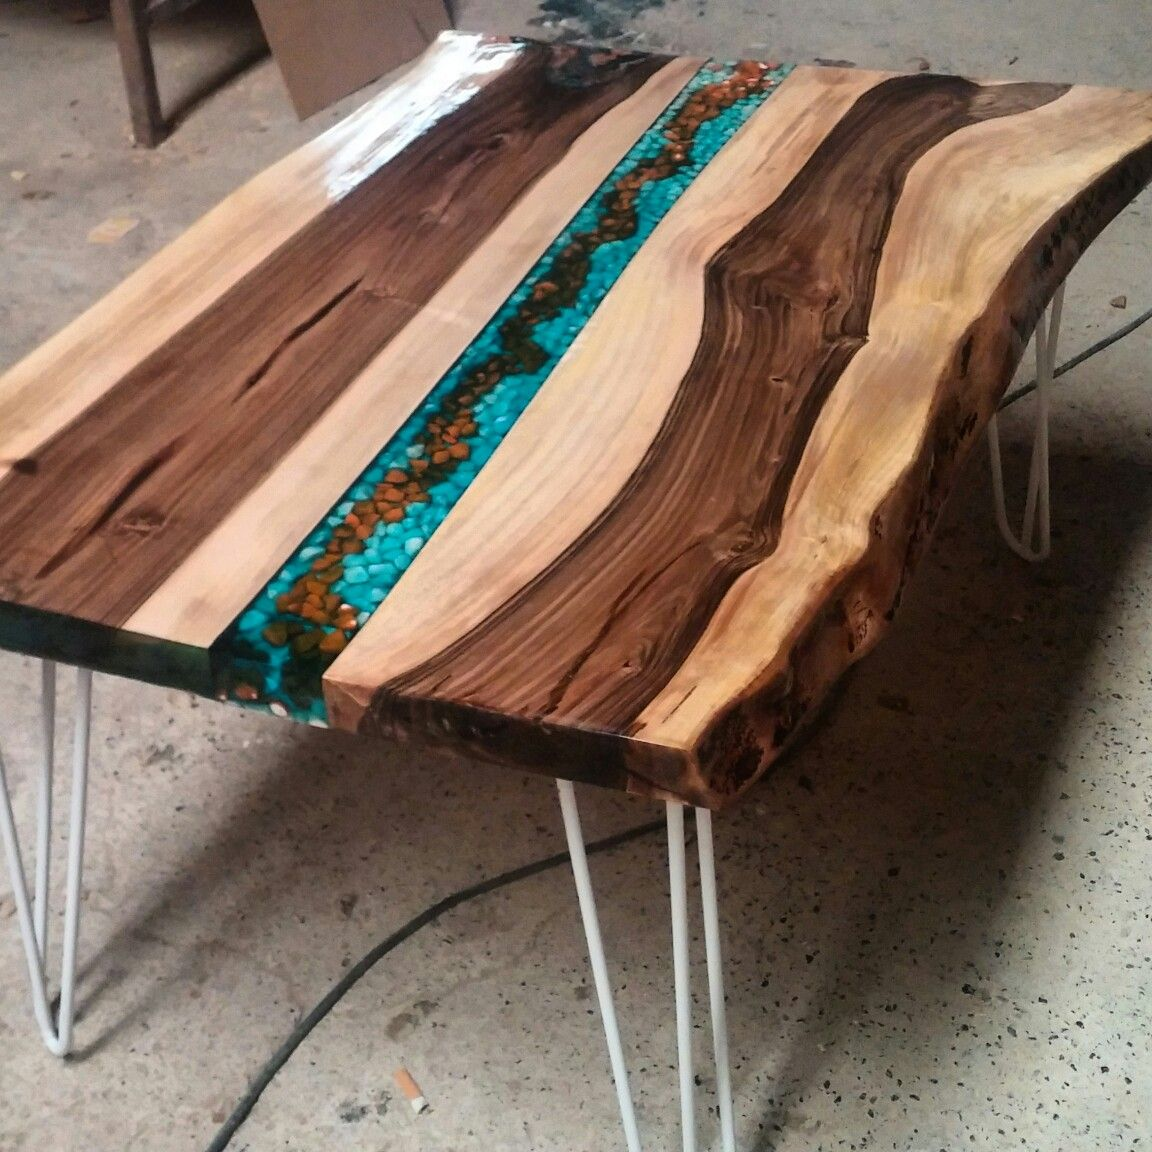 Walnut coffee table resin wood table pinterest r sine idee deco et id e - Resine epoxy bois ...